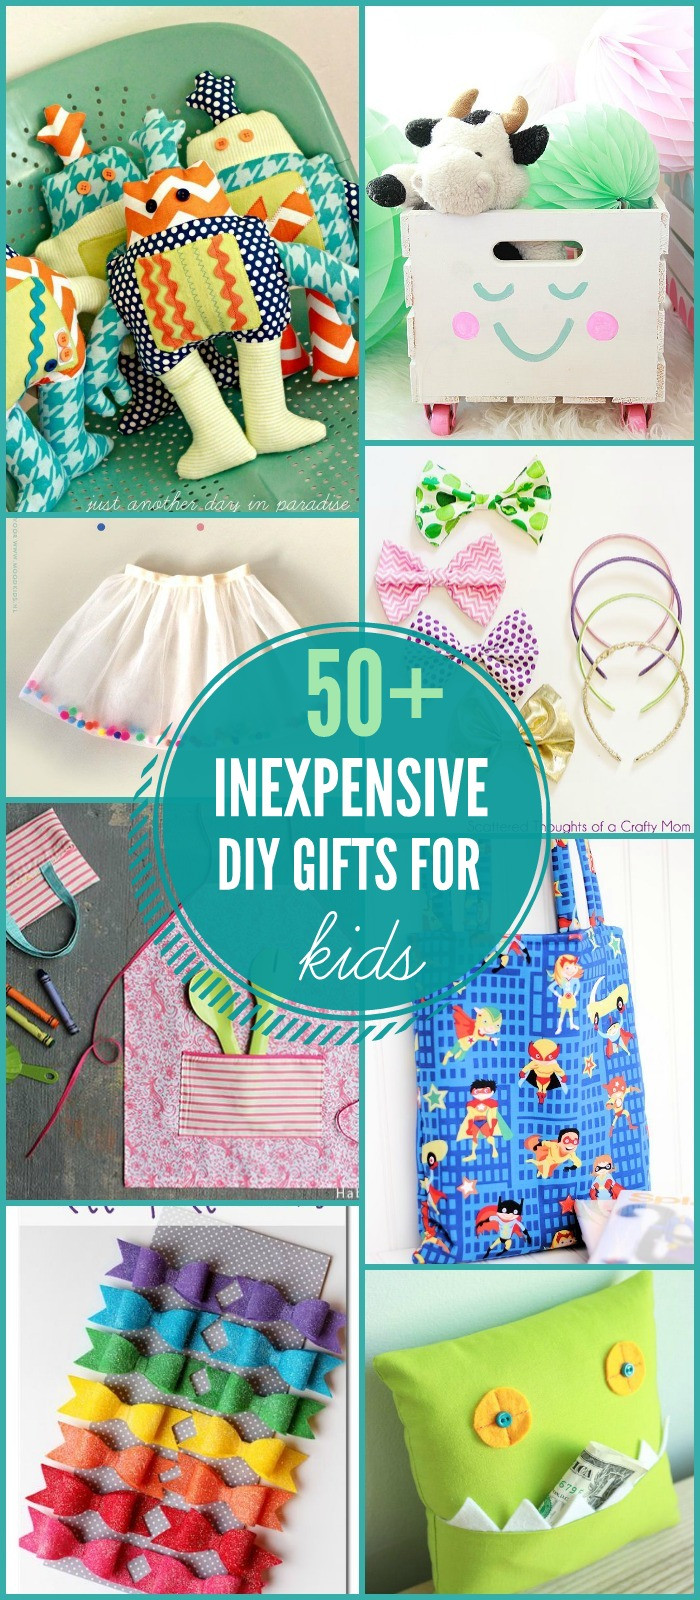 Best ideas about DIY Gifts For Kids . Save or Pin DIY Gifts for Kids Now.